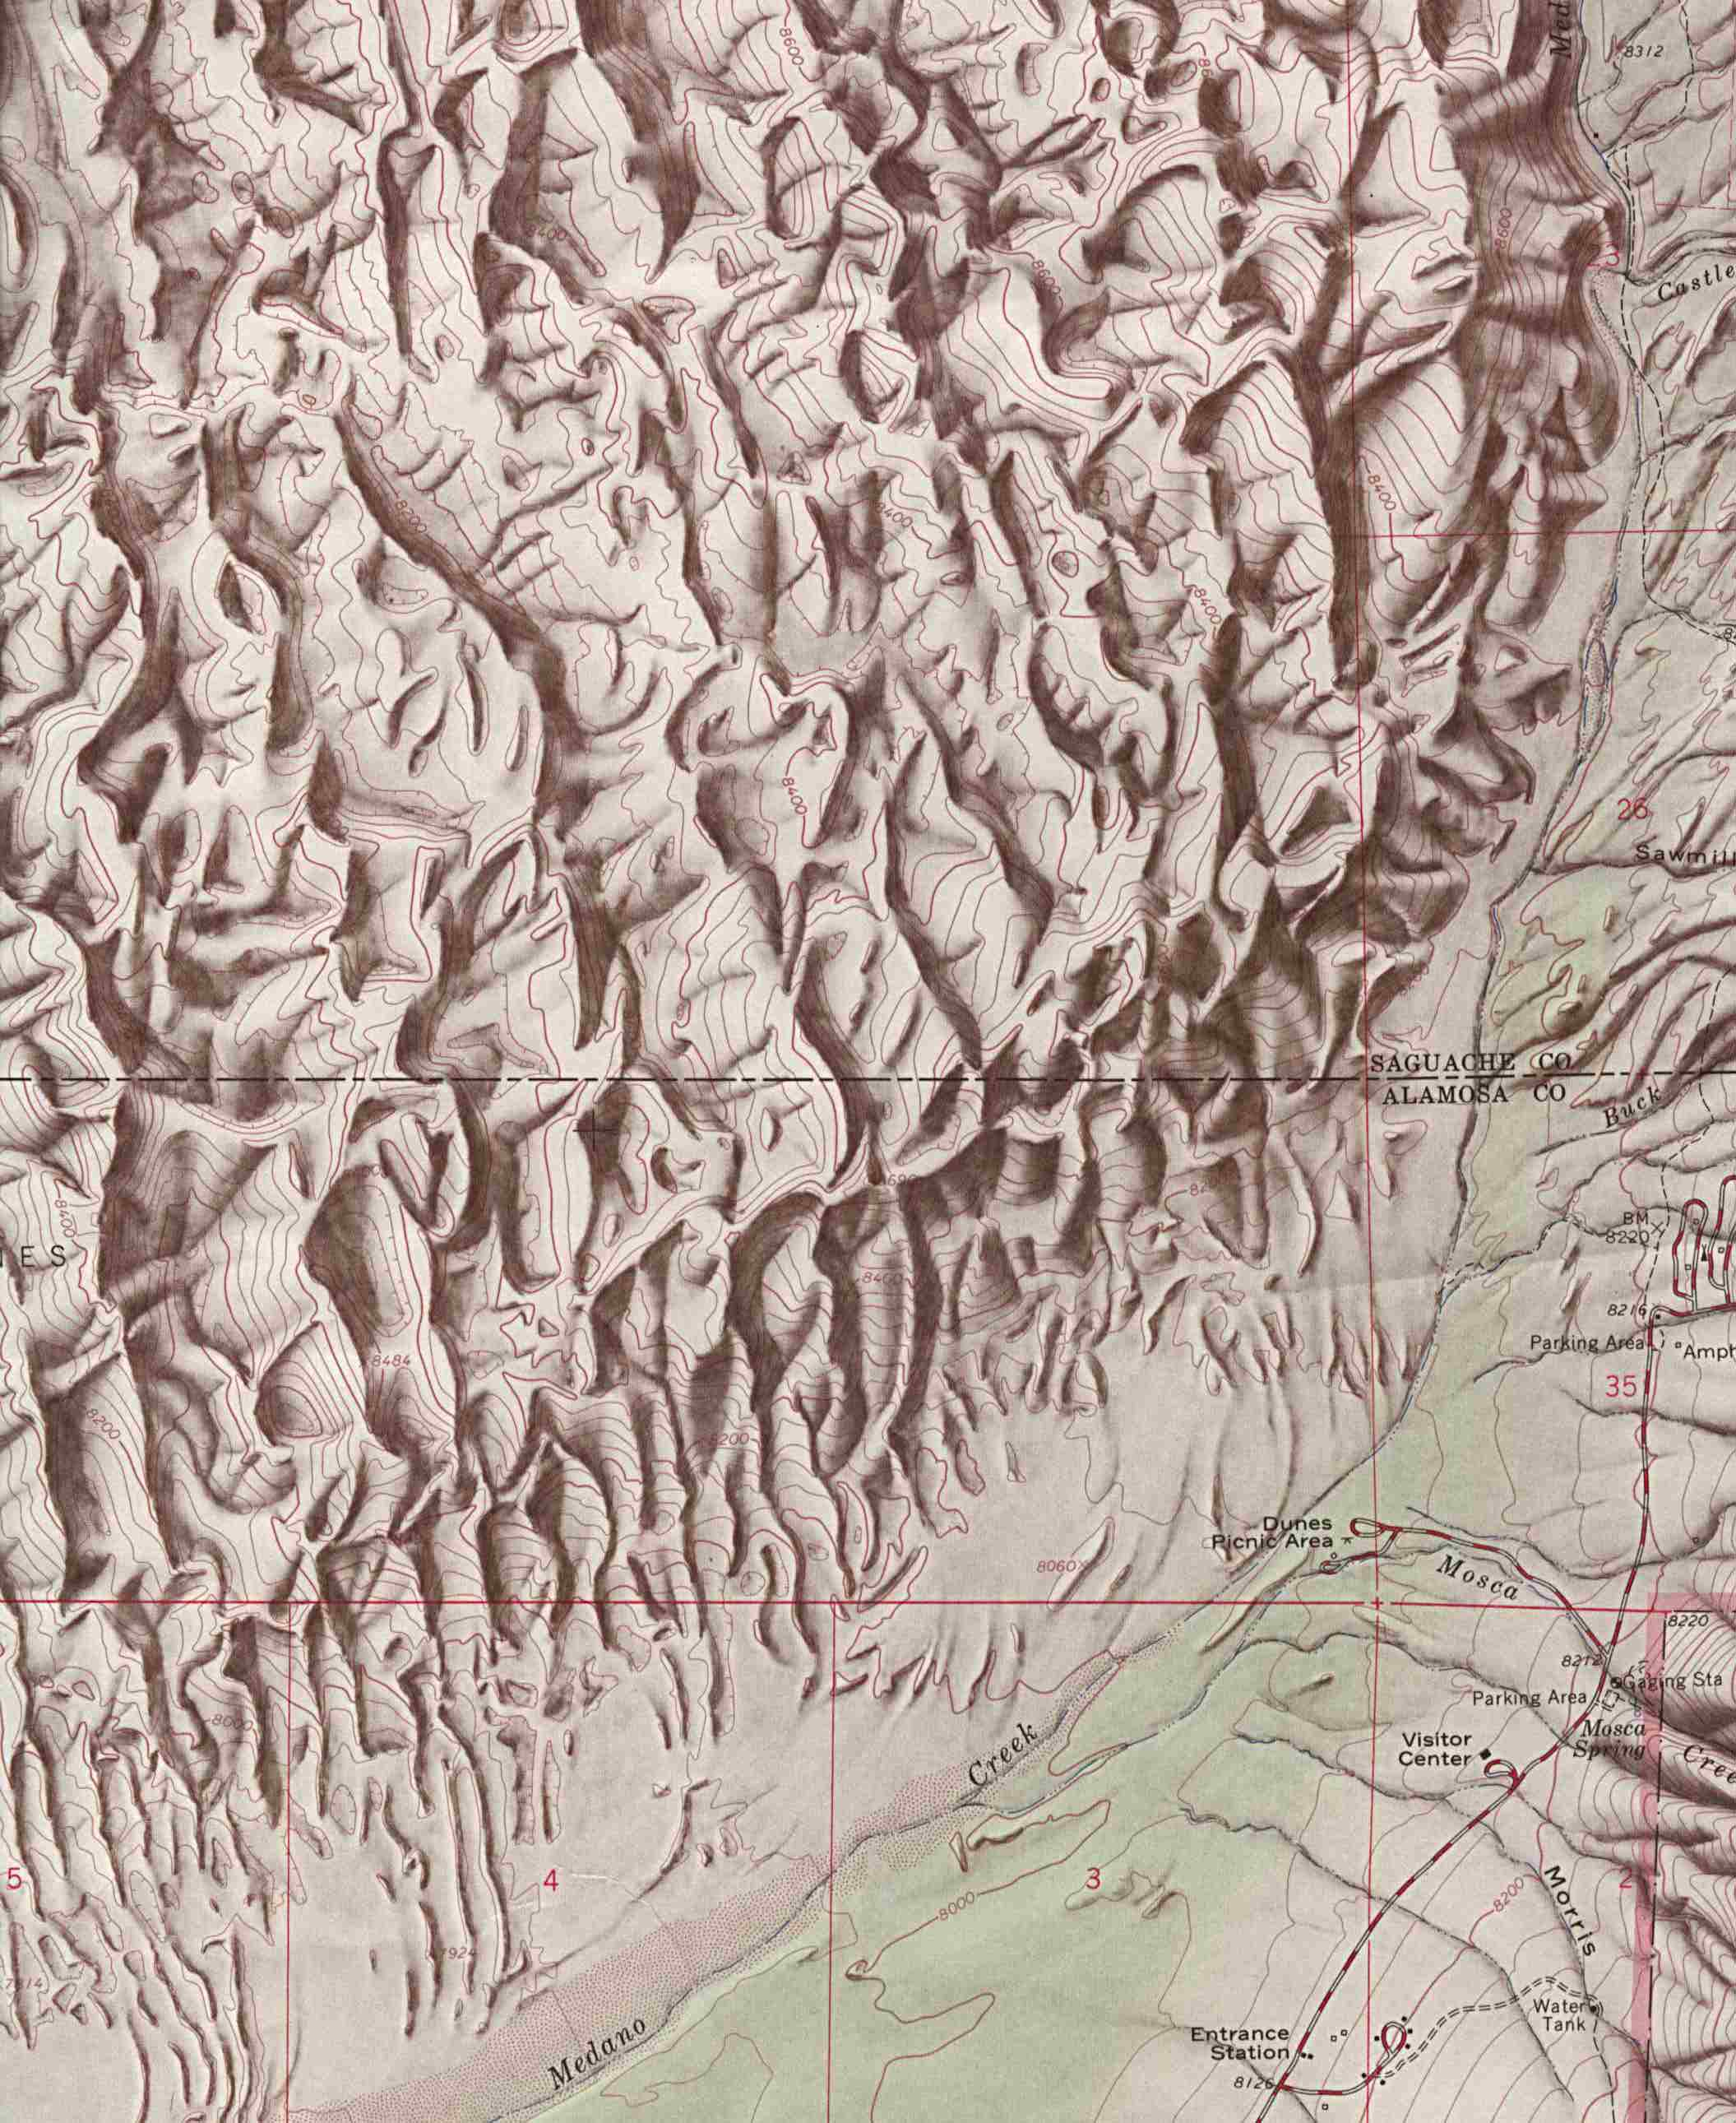 Maps of United States National Parks, Monuments and Historic Sites Great Sand Dunes National Monument [Colorado] (Shaded Relief Map) 1:24,000 U.S.G.S. 1967 (349K)